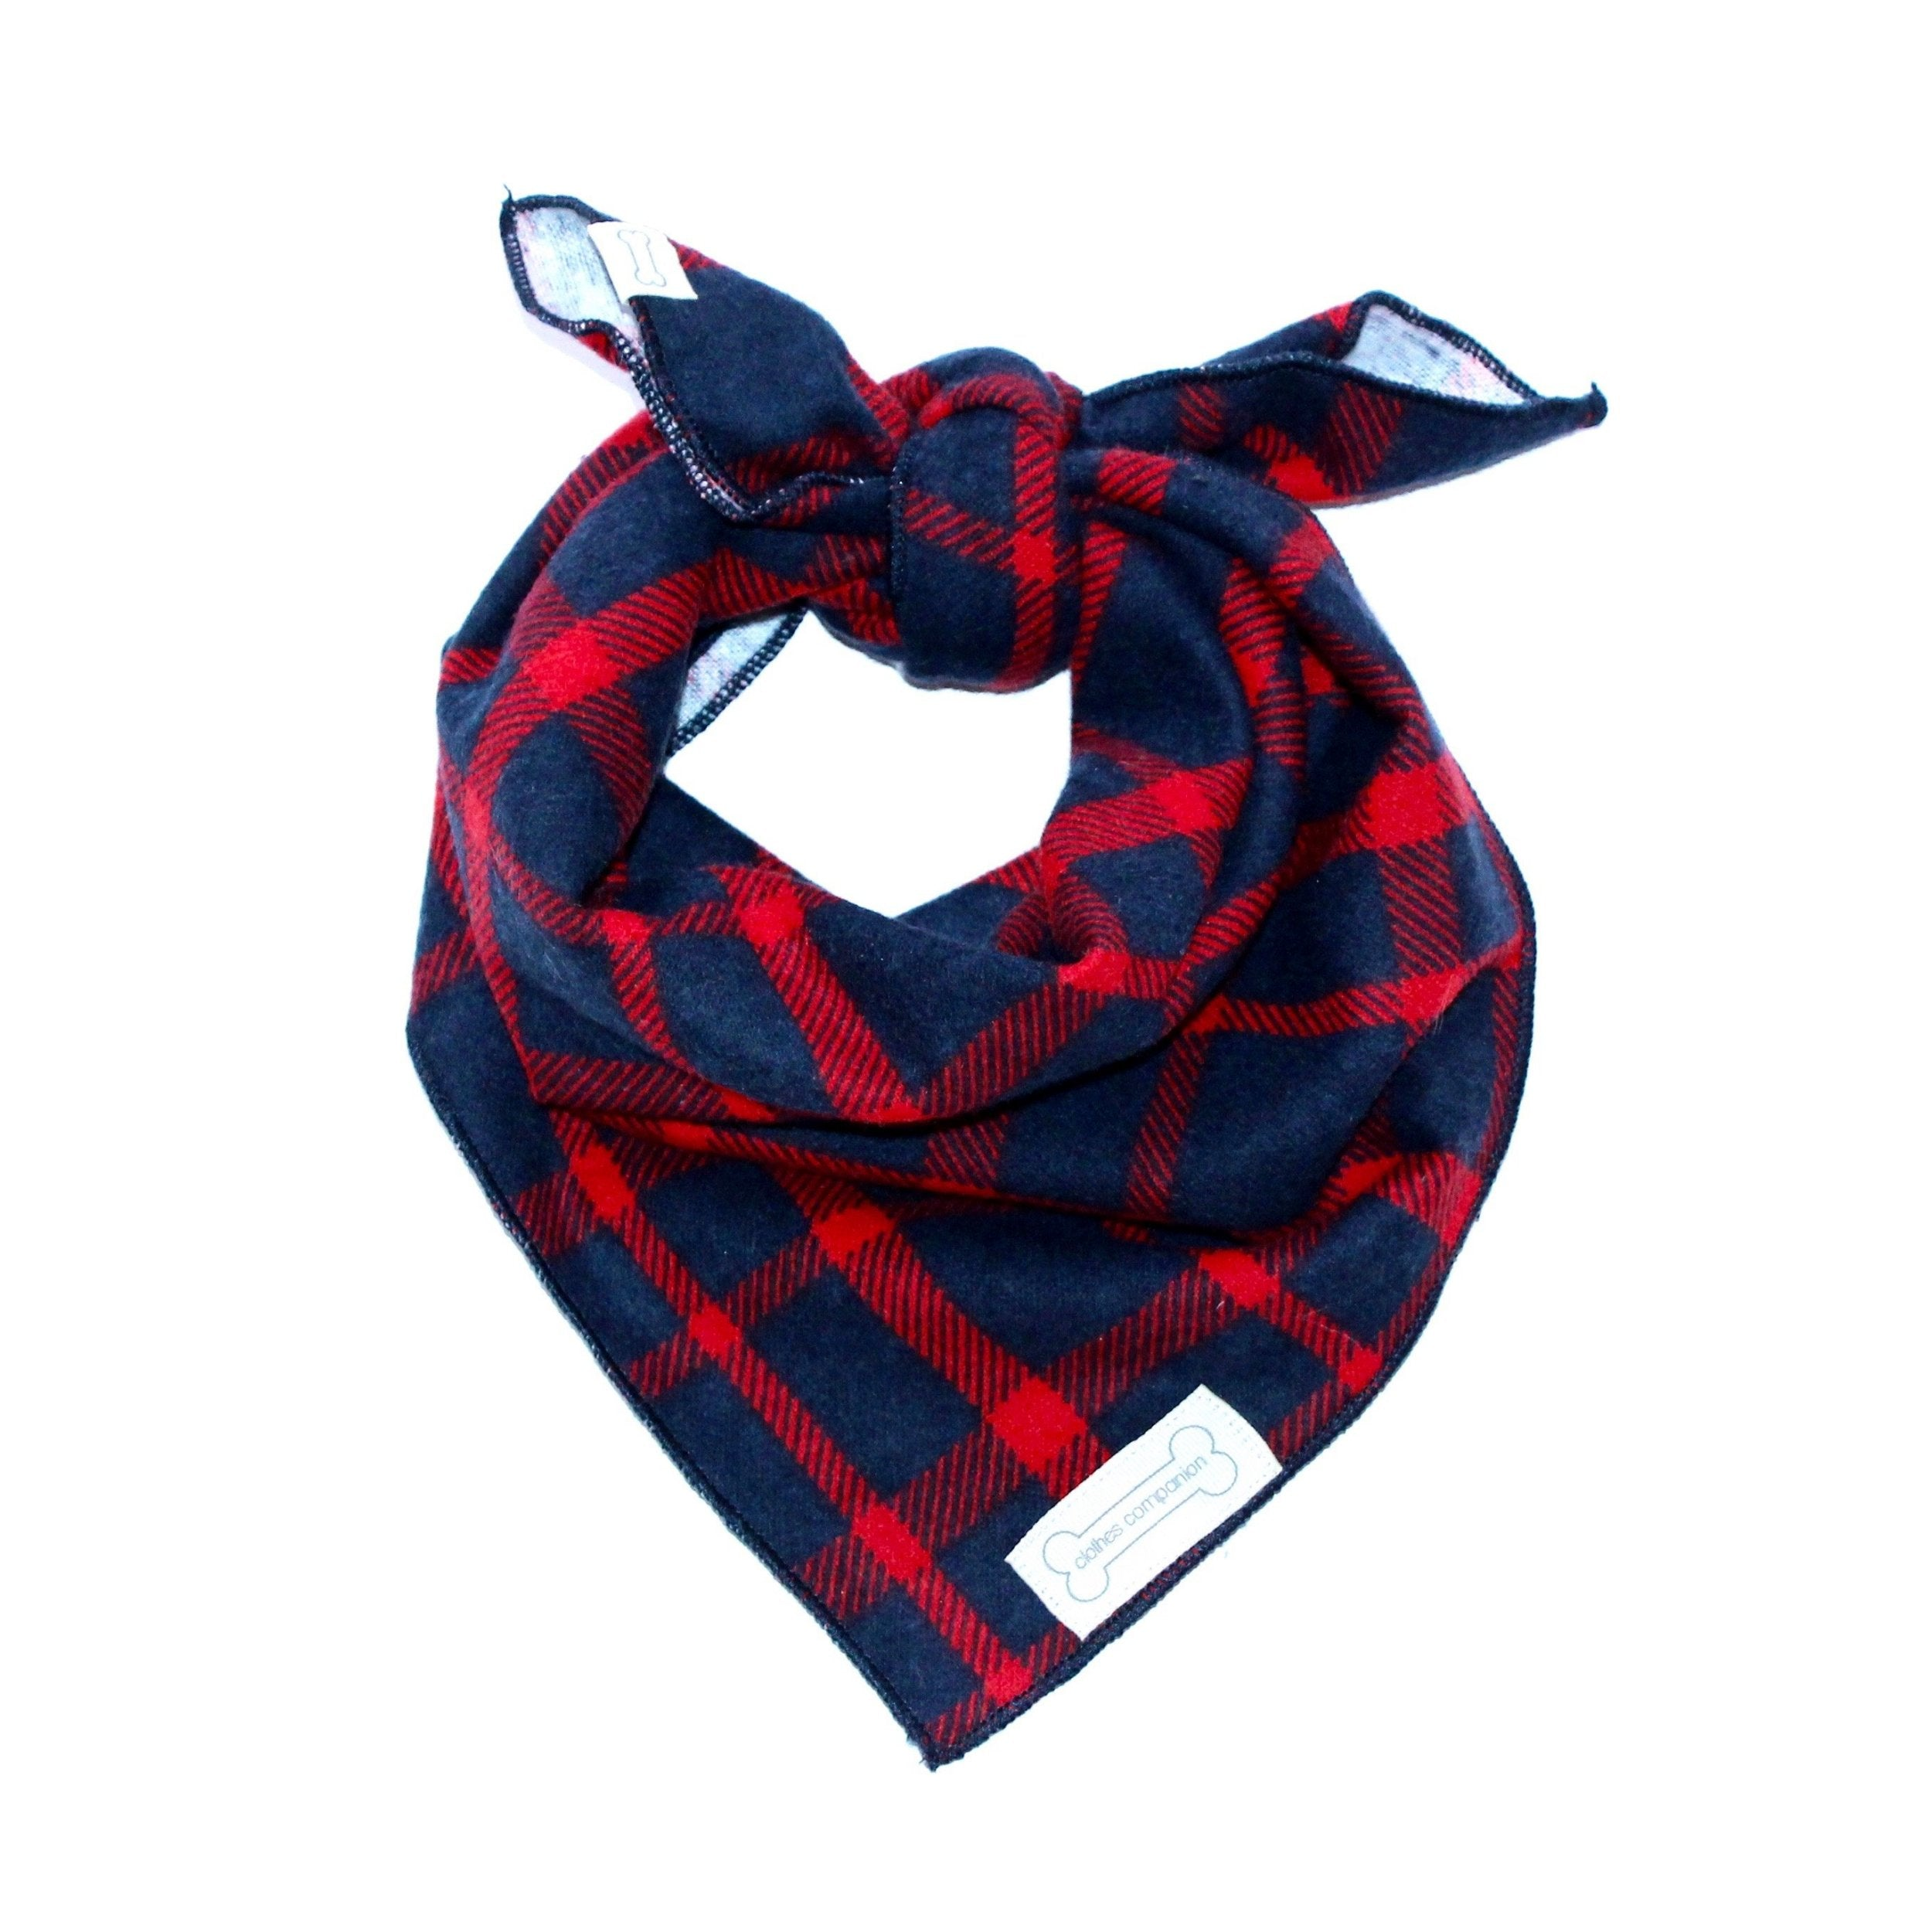 THE TEDDY CLASSIC-TIE BANDANA